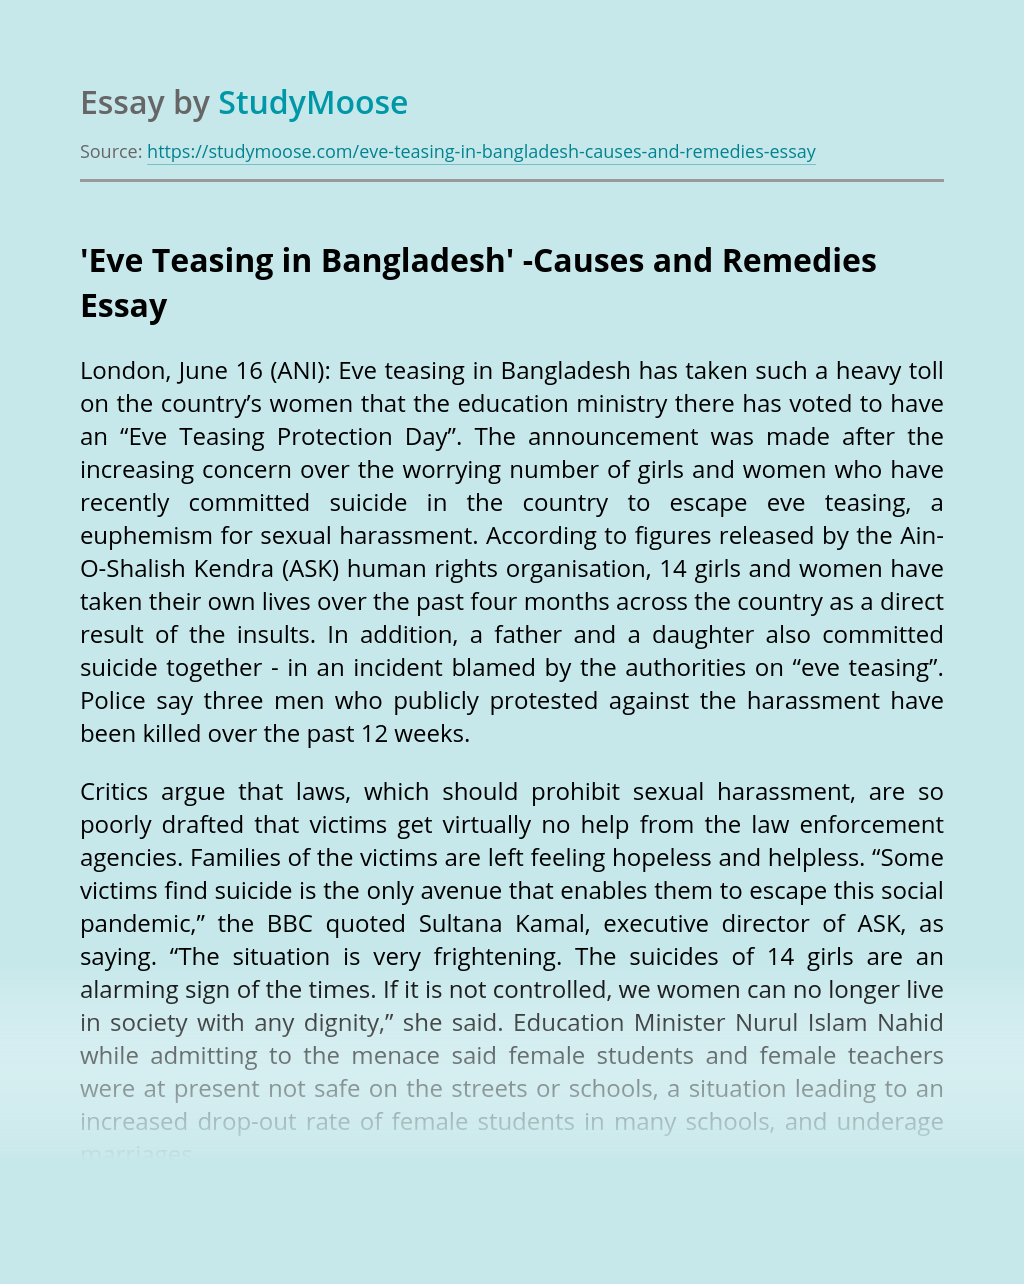 'Eve Teasing in Bangladesh' -Causes and Remedies